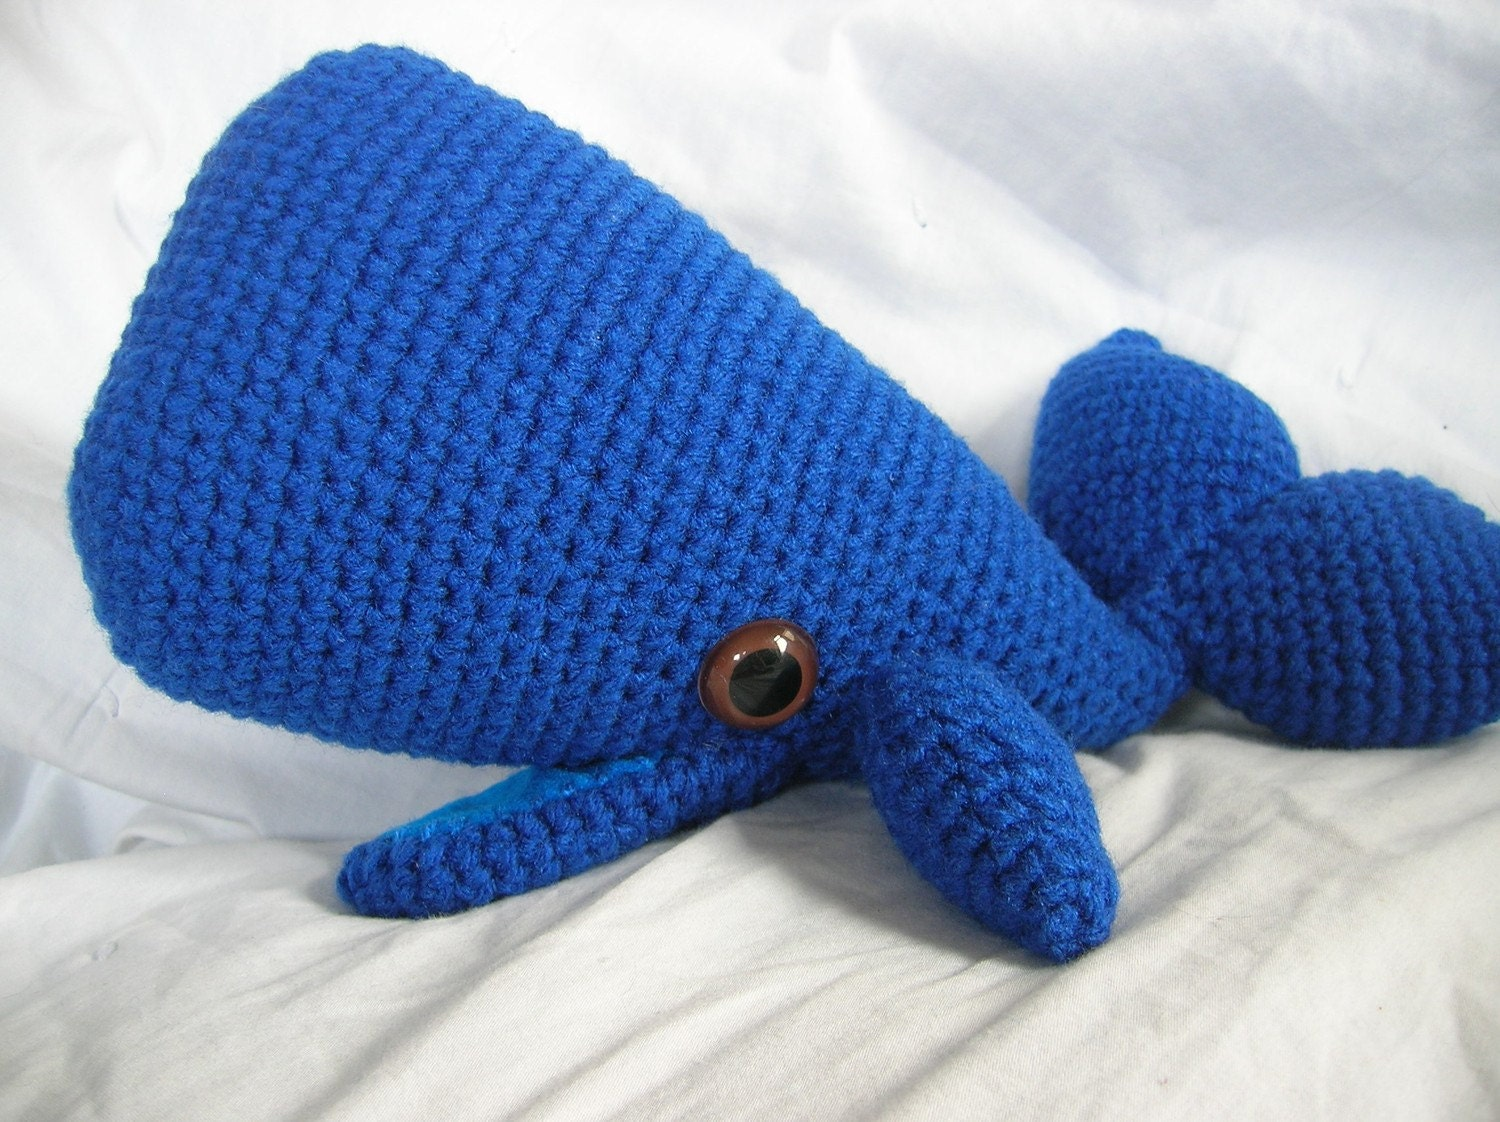 Amigurumi Christmas Ornaments Patterns : Wally the Whale Amigurumi Plush Crochet PATTERN ONLY PDF